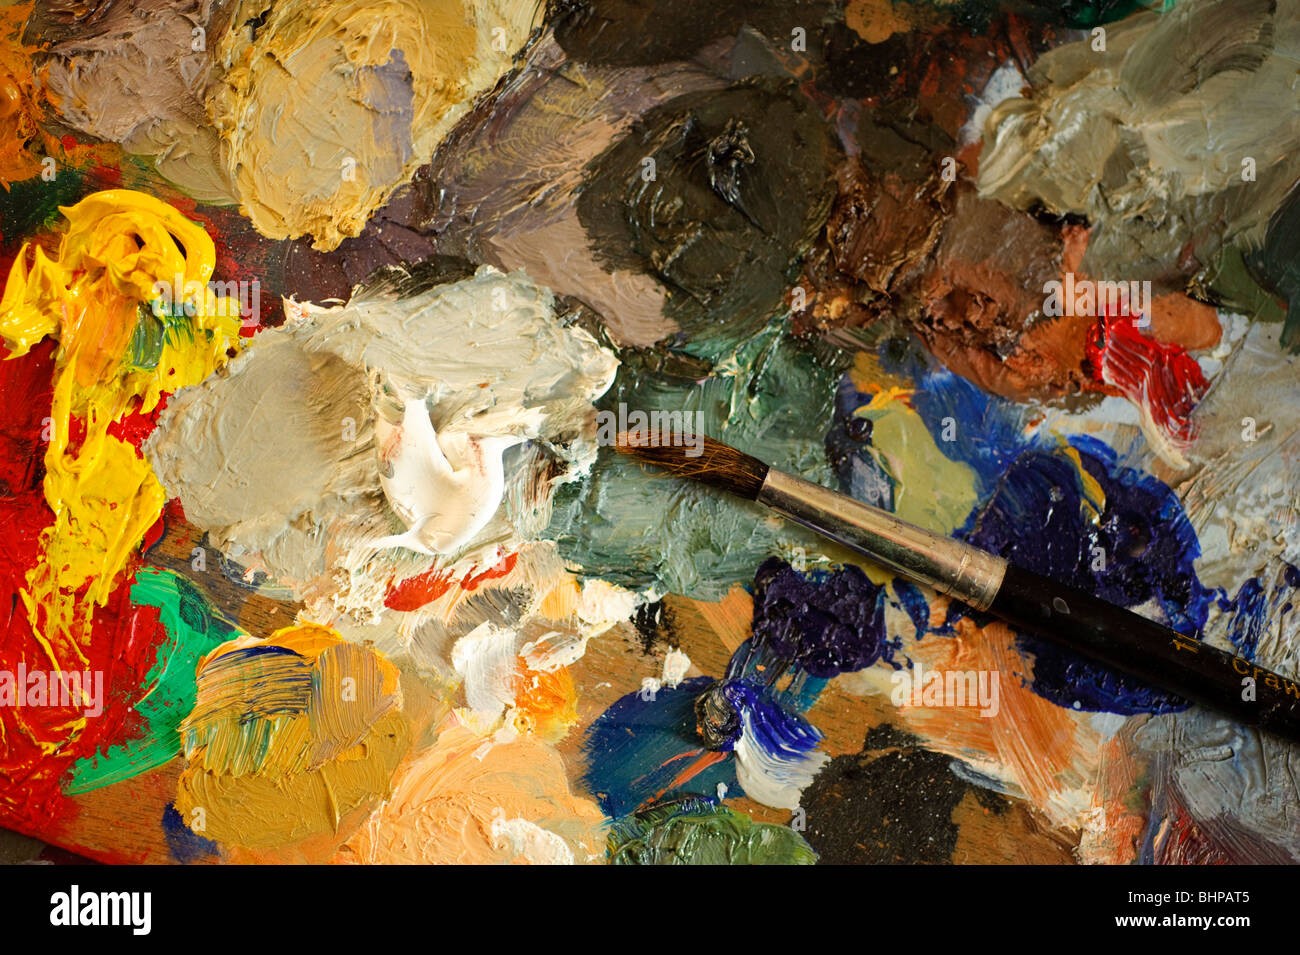 paint brush and oil paints pigments on artist's palette - Stock Image